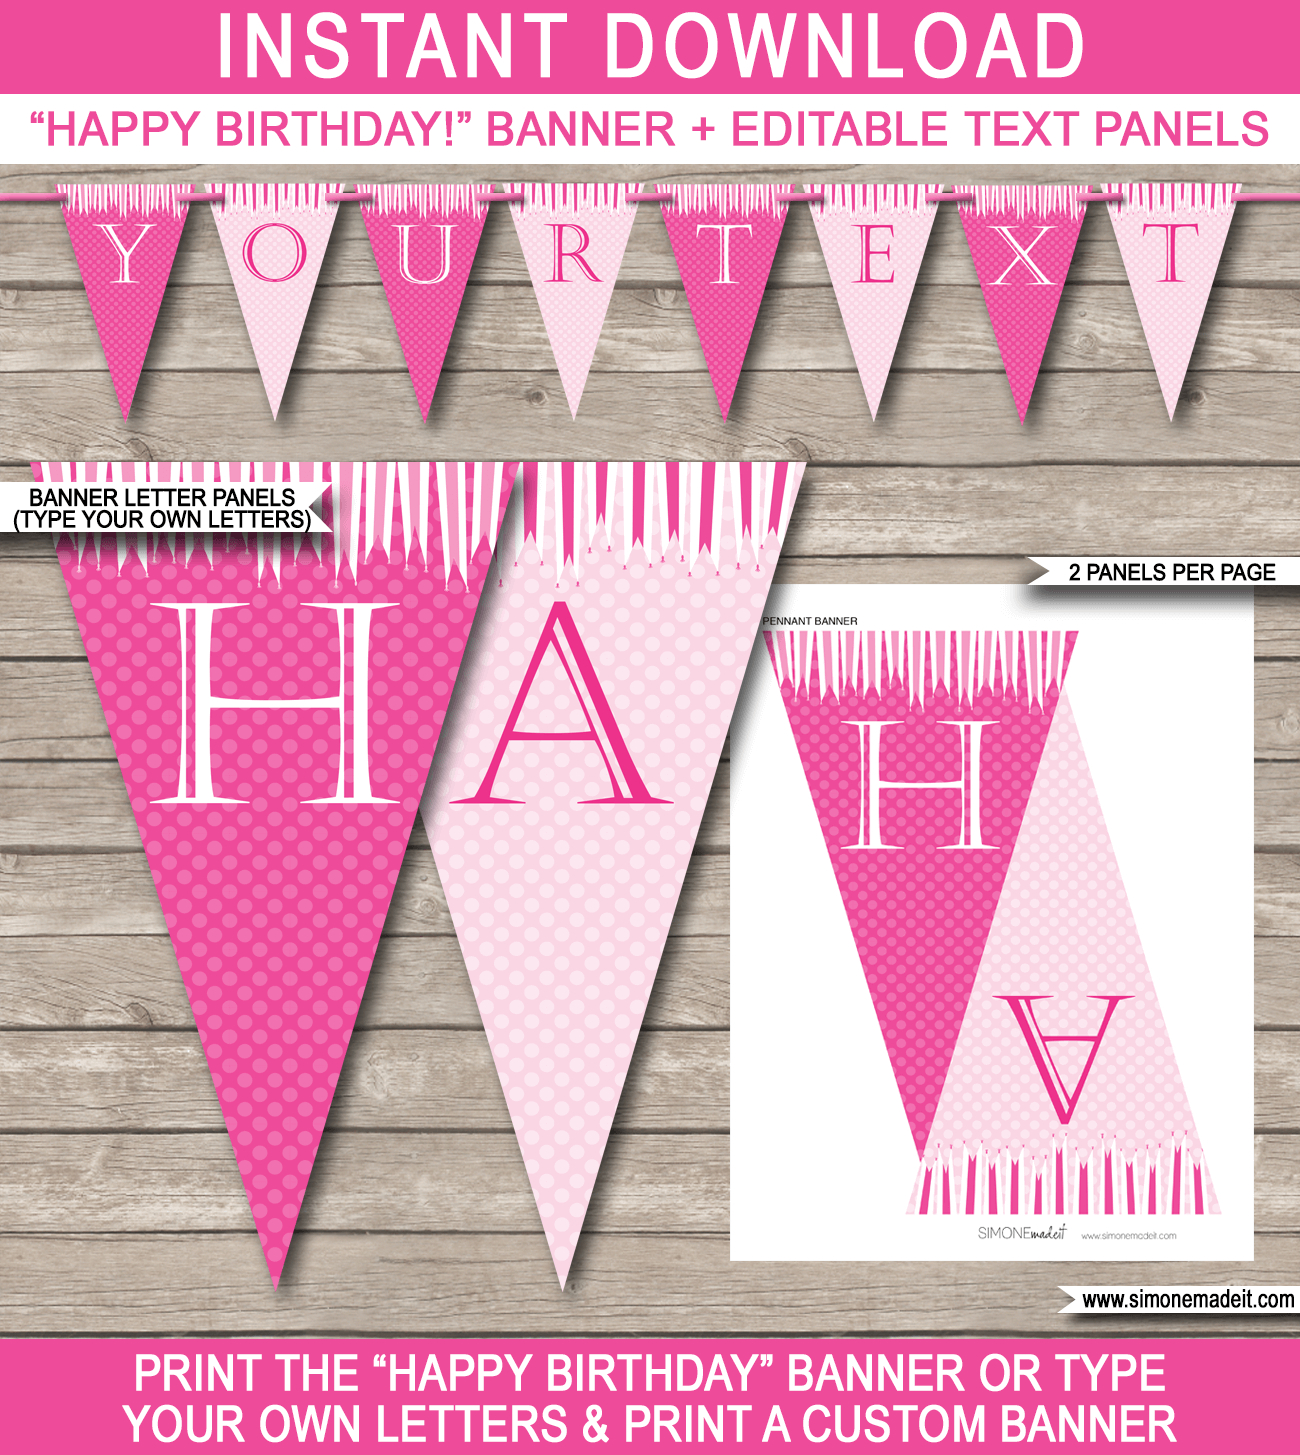 Princess Party Banner Template | Birthday Banner | Editable Bunting - Free Printable Princess Birthday Banner